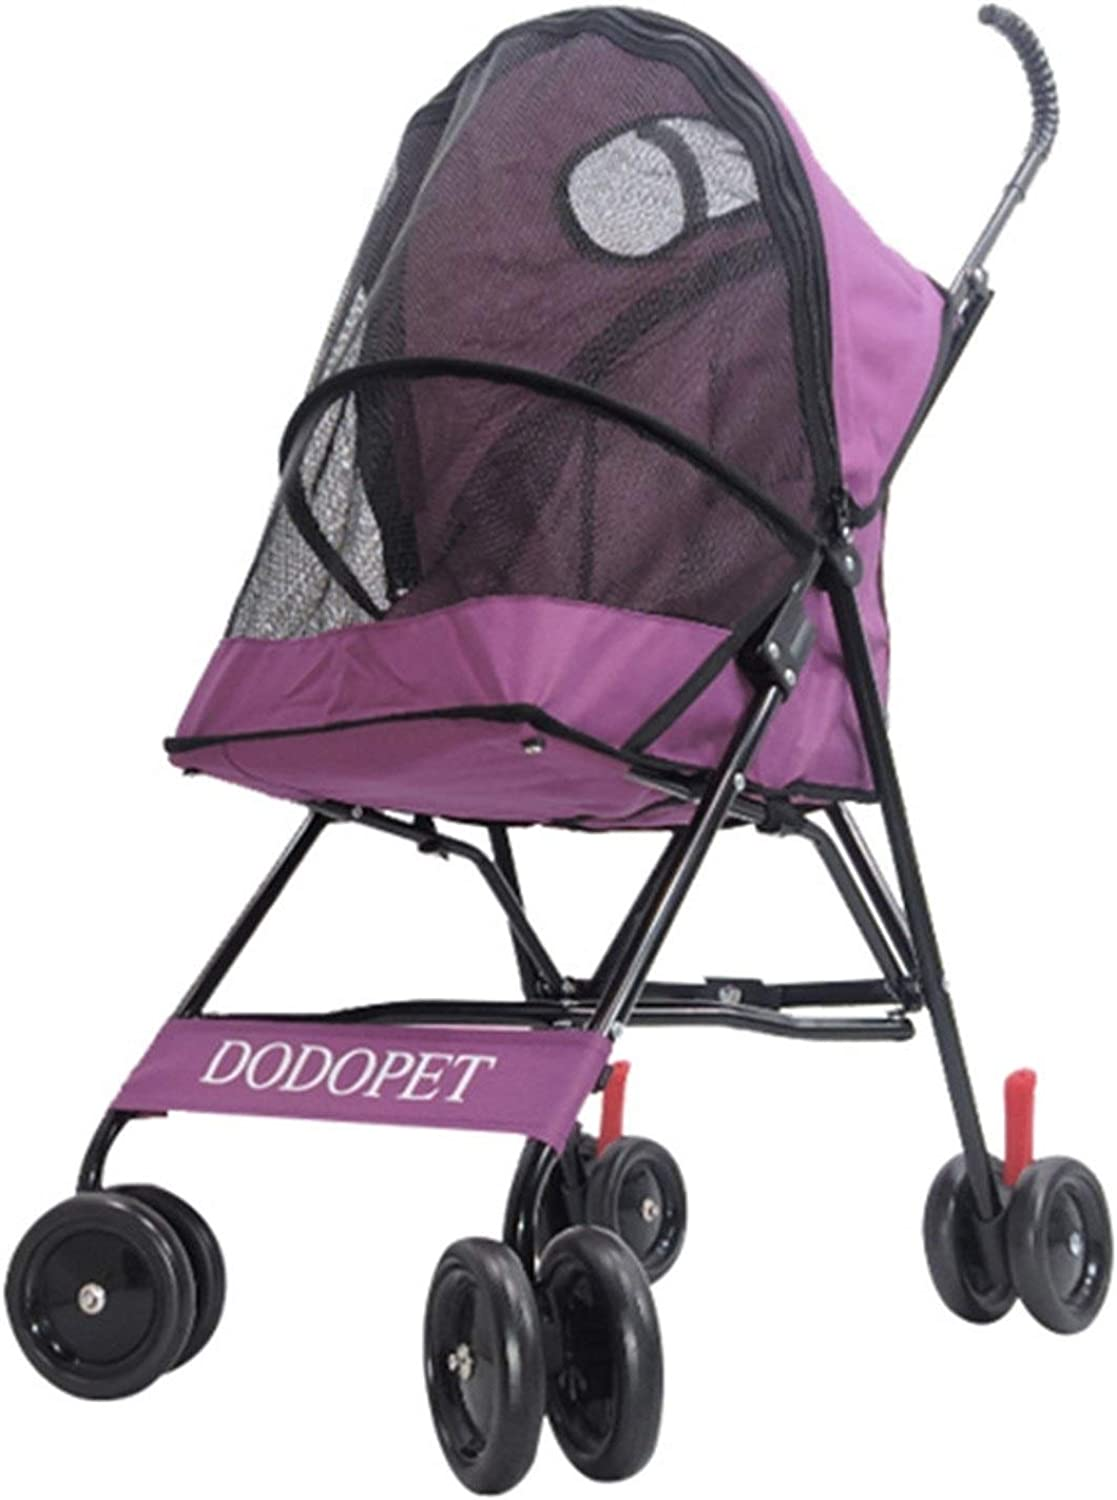 LXYFMS Standard Pet Stroller Foldable Dog And Cat Stroller Pet stroller (color   Purple)